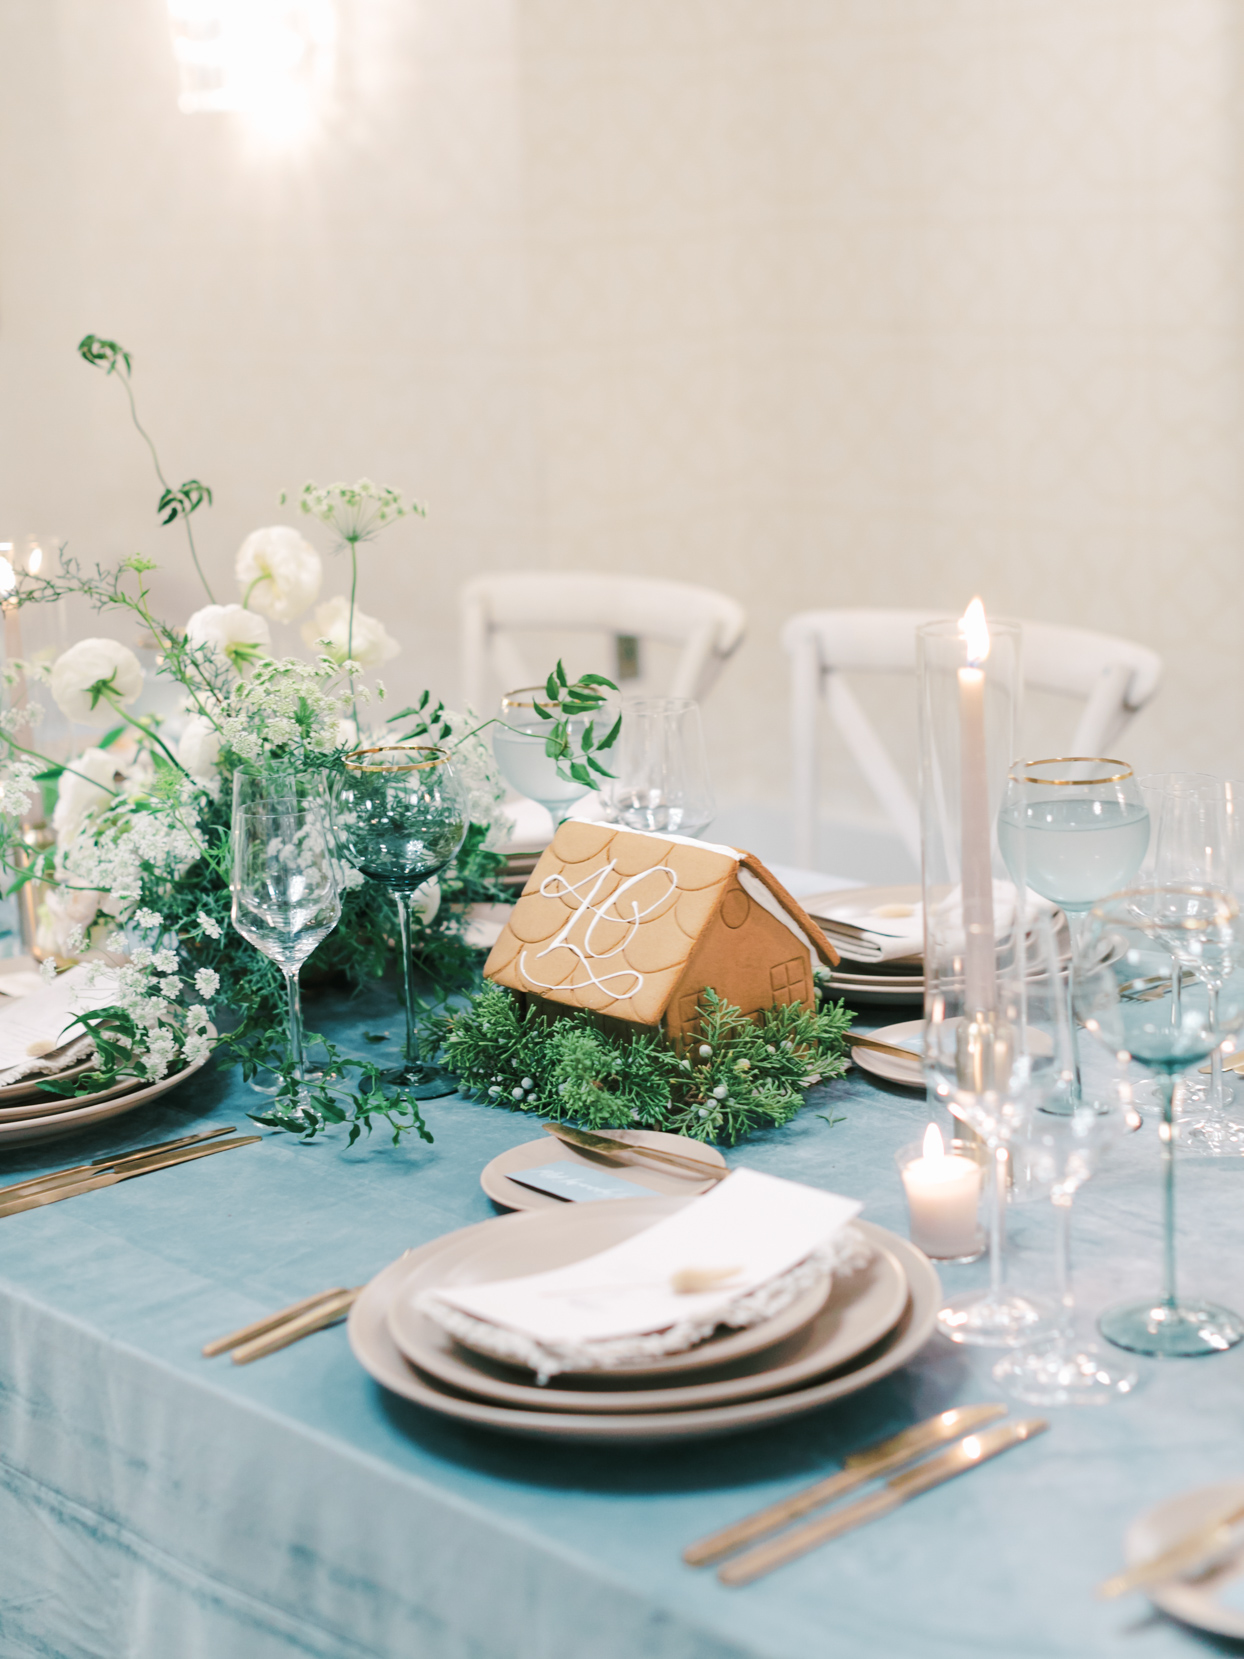 elegant blue table setting with decorative gingerbread houses and candles